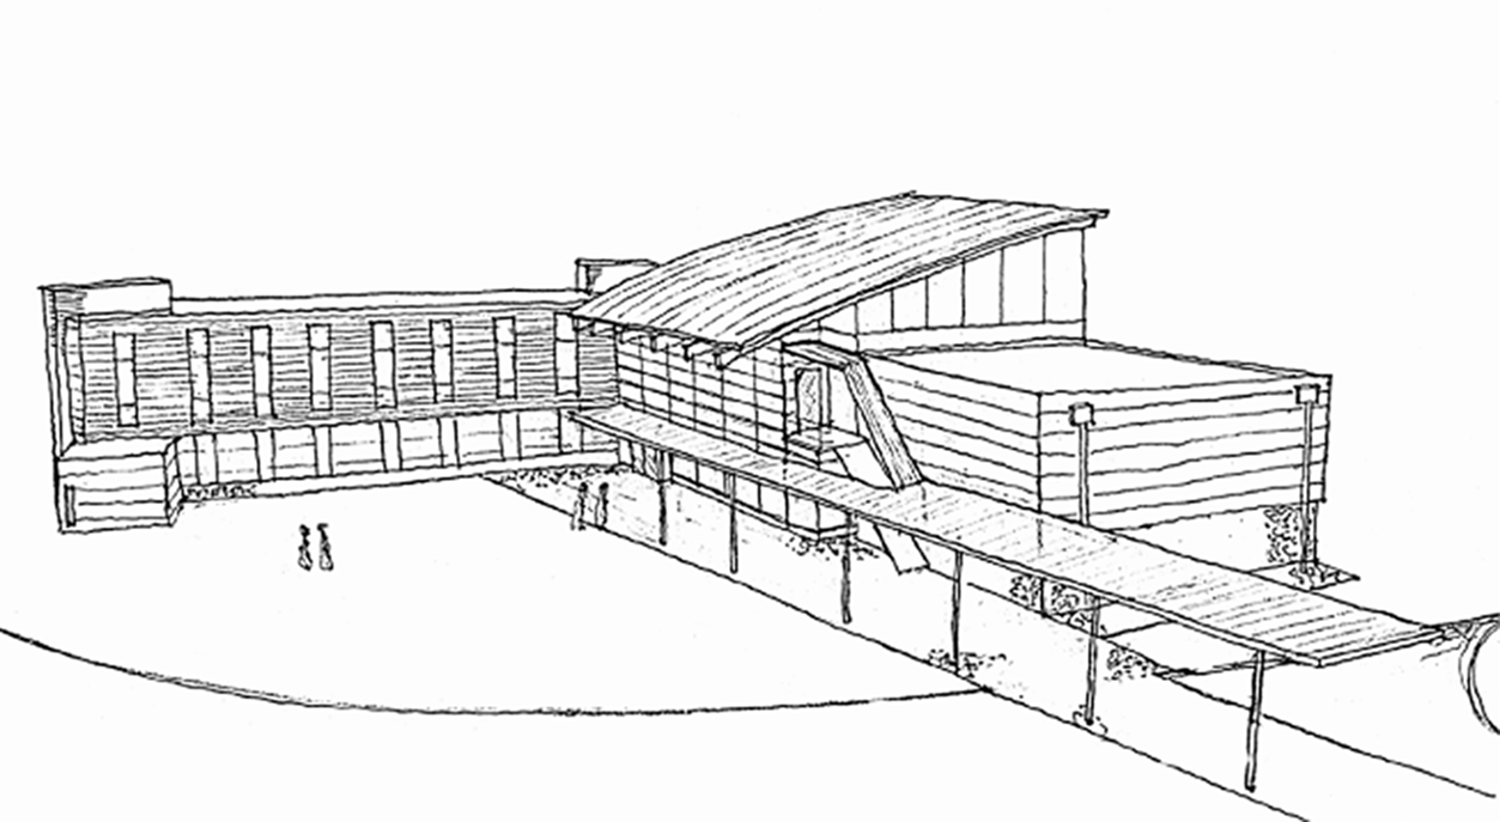 Rendering of proposed community center